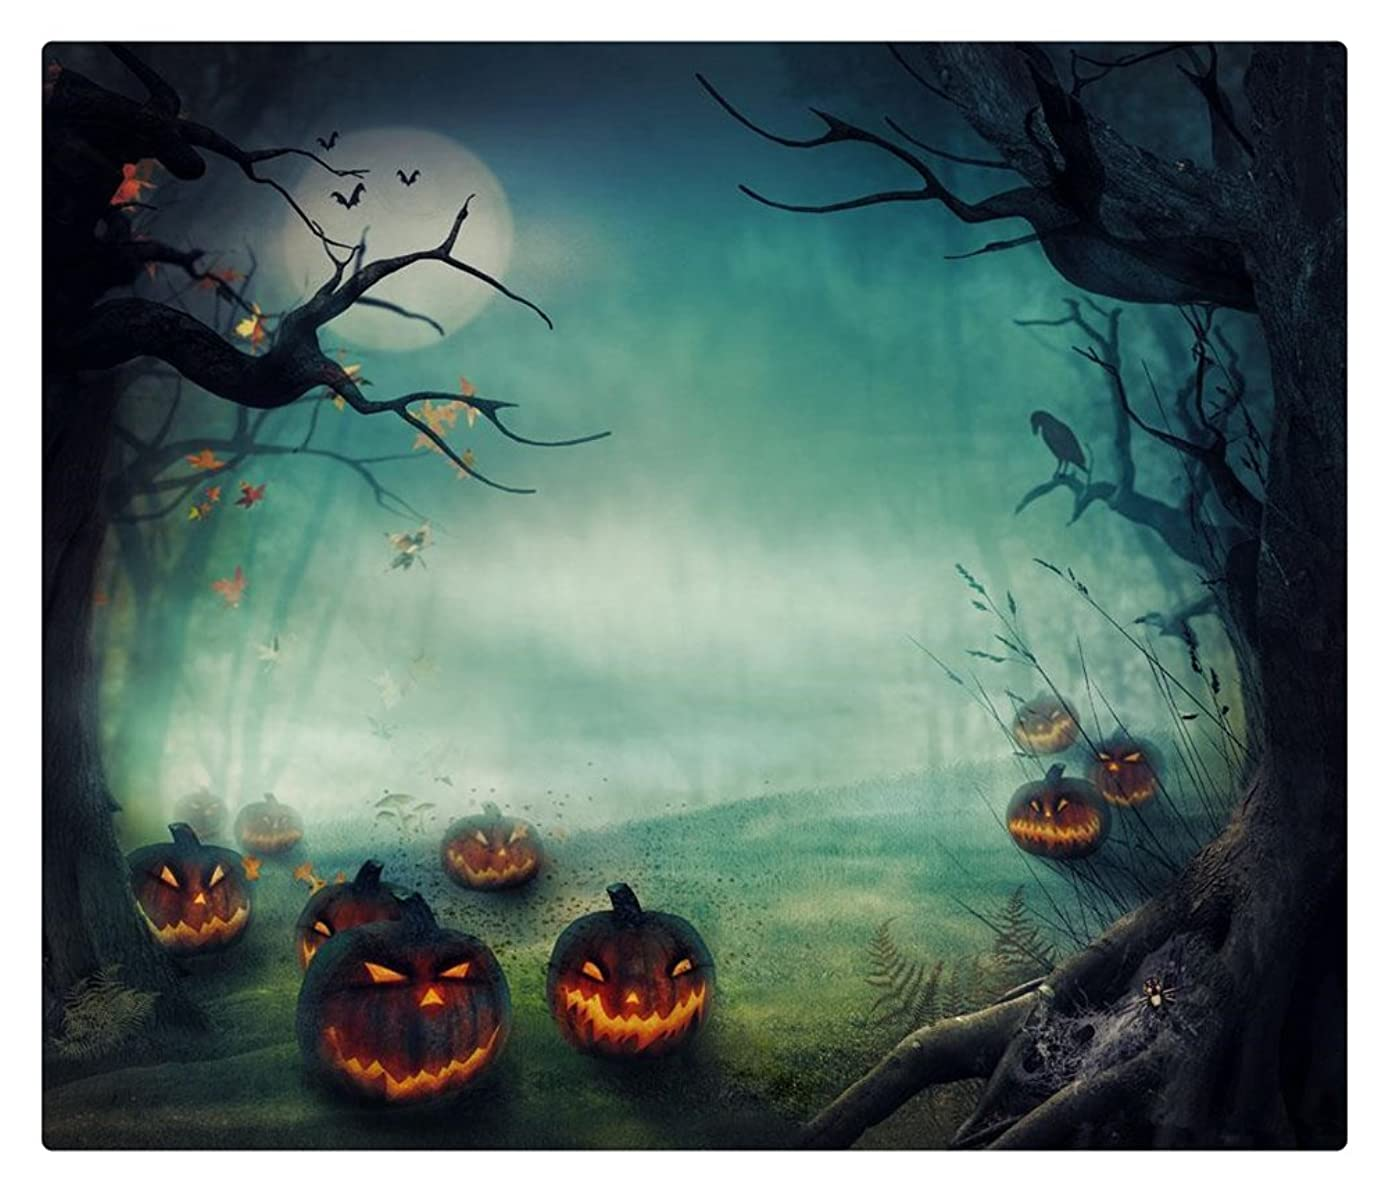 5x7 Photography Backdrop Halloween Misty Forest Yellow Pumpkin Lamps Black Trees Photo Backgrounds Moon Photo Studio Backdrop Holiday